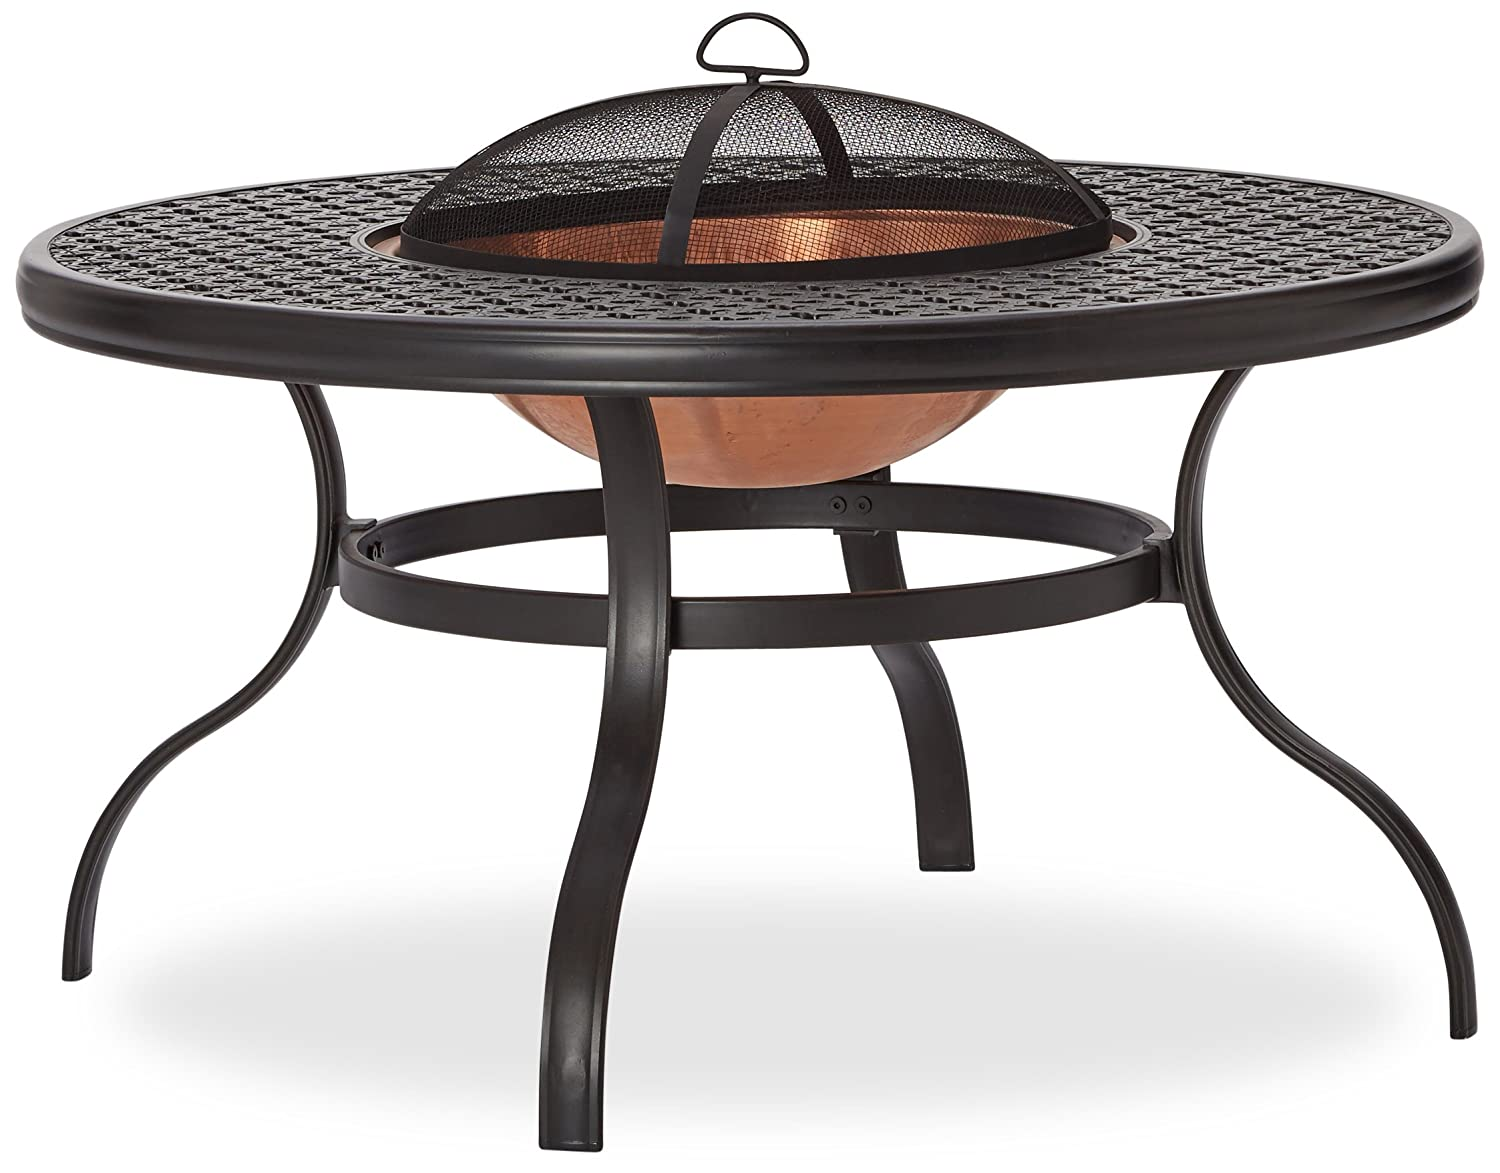 Cast Aluminum Fire Pit with Round Table and Detachable Lid